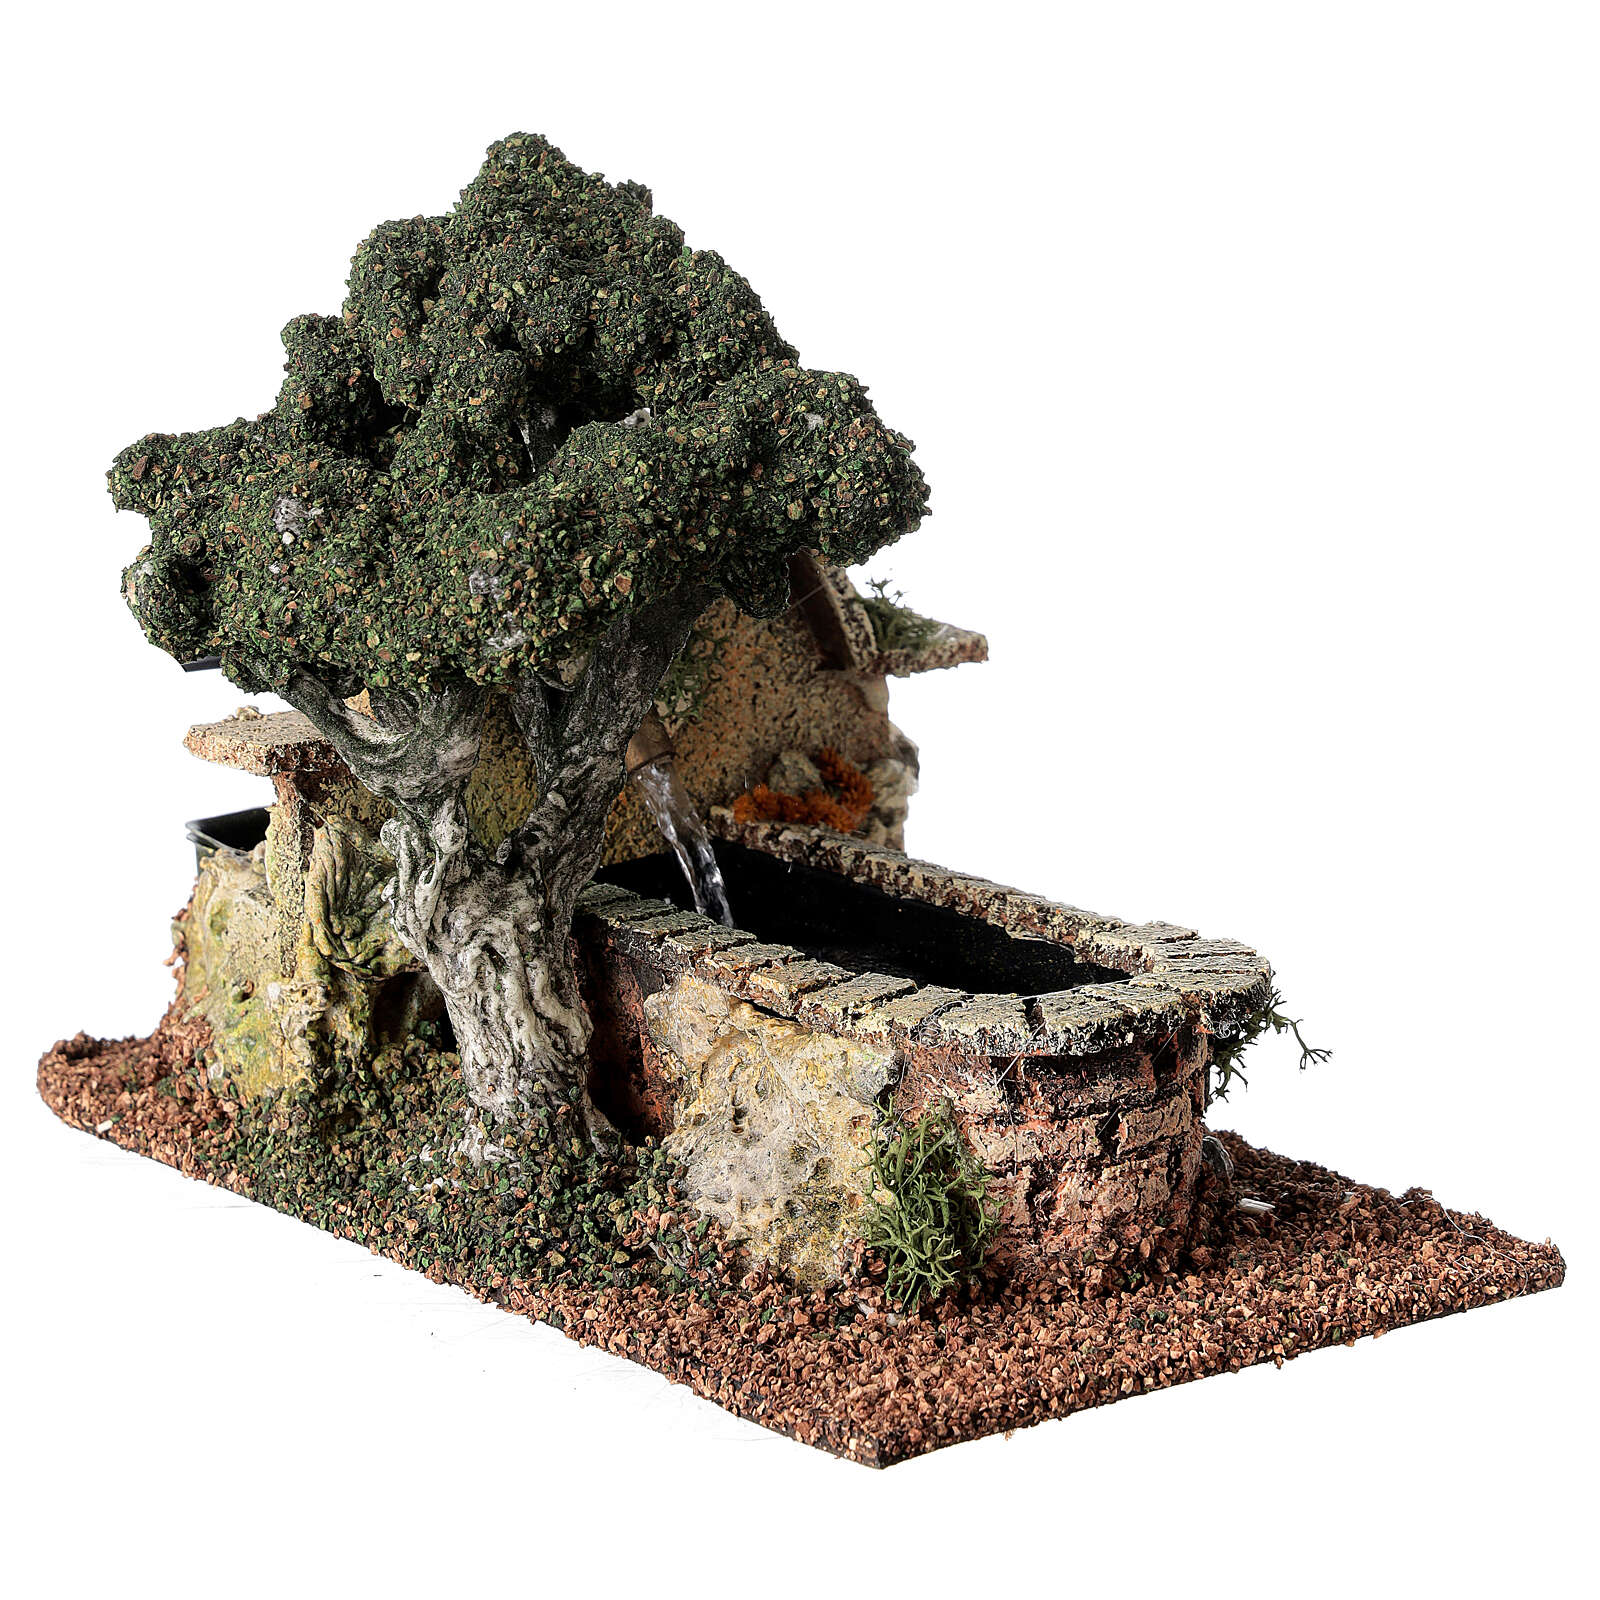 Electric fountain with tree 15x10x20 cm for Nativity Scene with 8-10 cm figurines 4